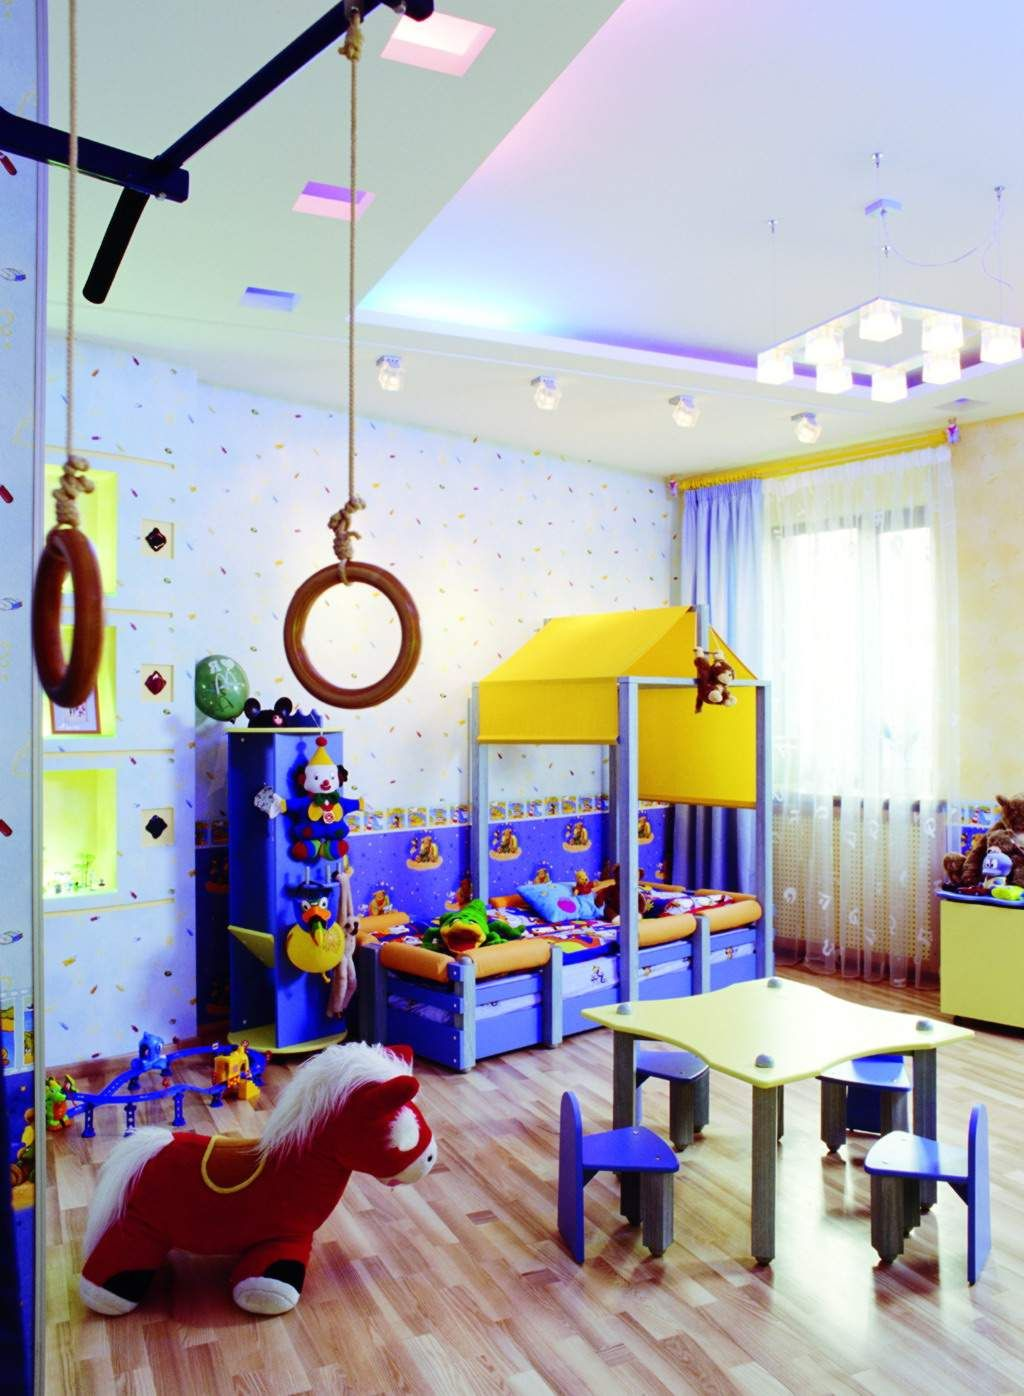 Kids bedroom kids room interior design with play and learn for Child room decoration